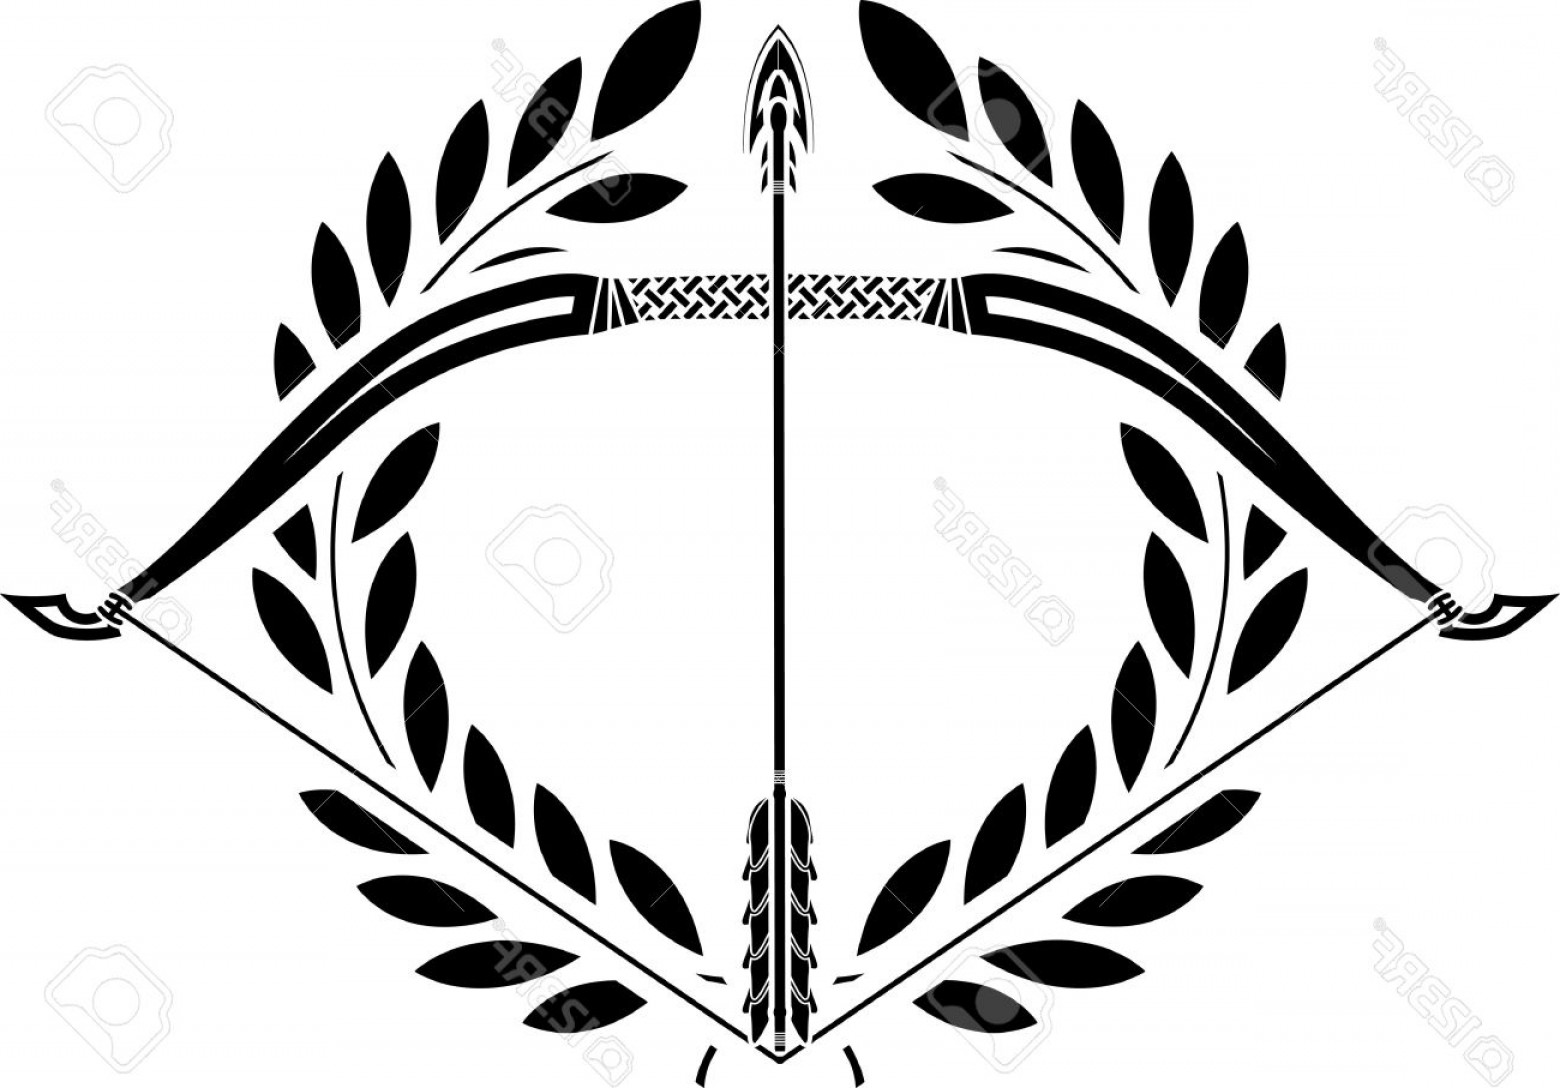 1560x1088 File Bow And Laurel Wreath Stencil Illustration Stock Vector